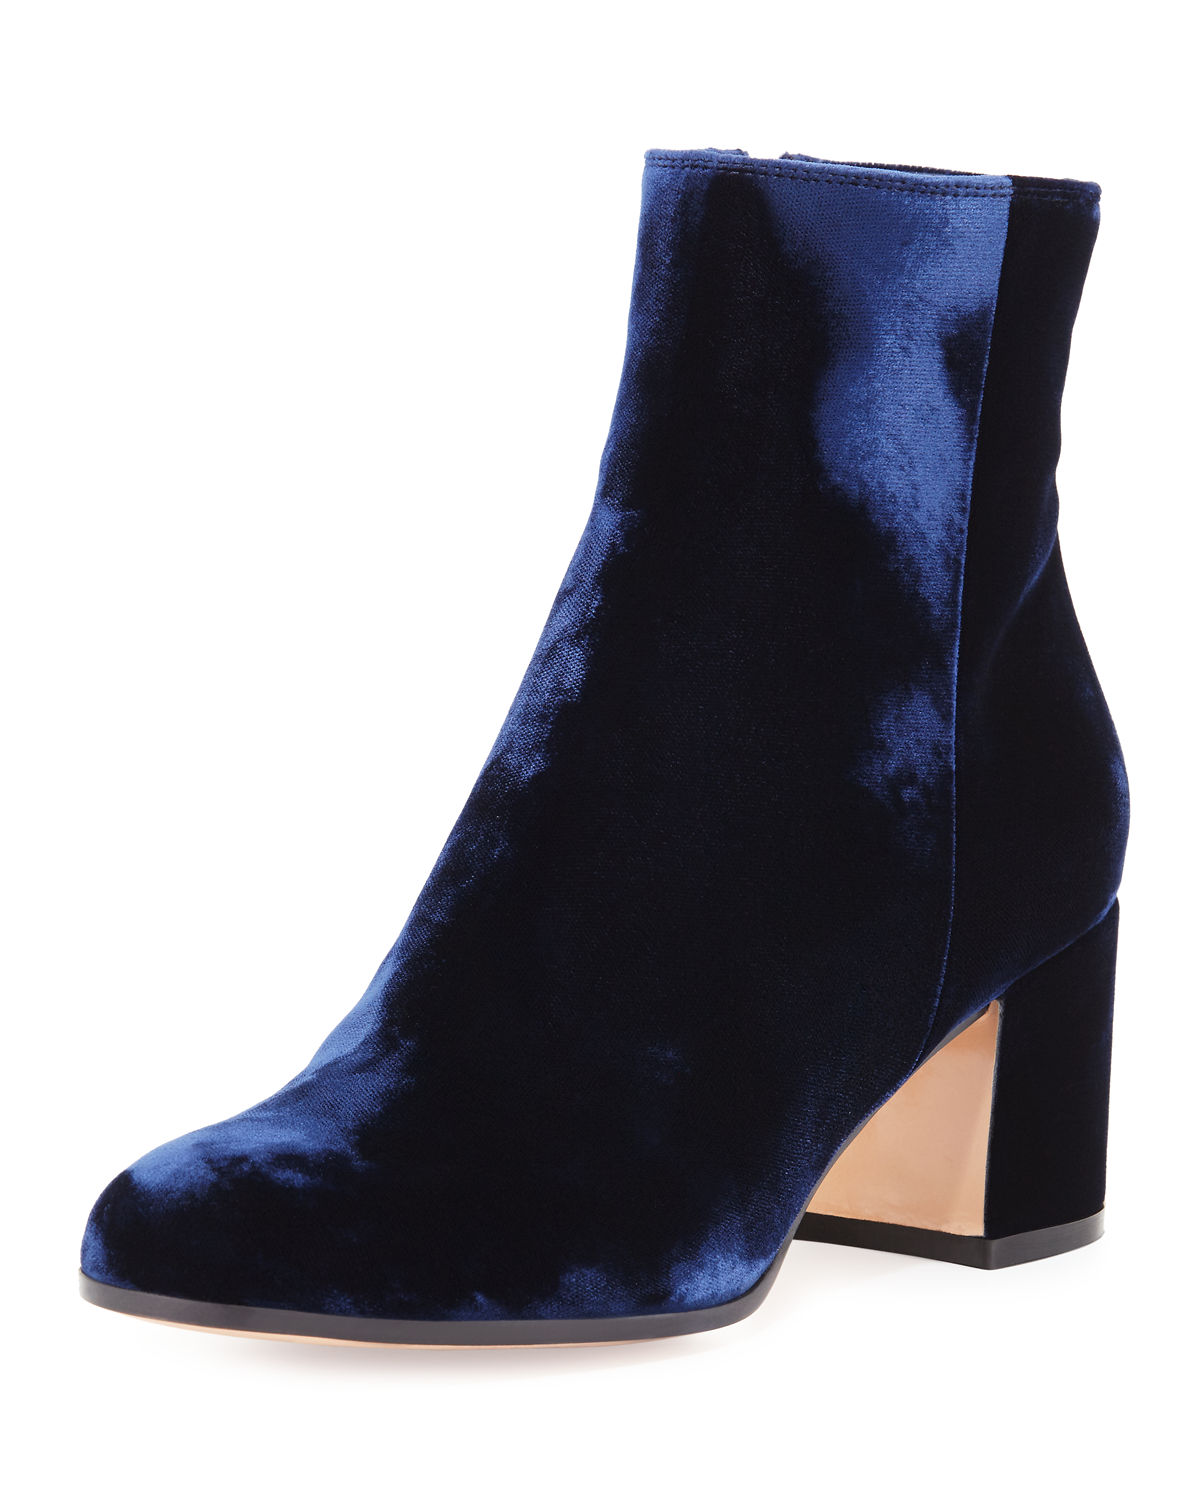 25 Must Have Ankle Boots - Fall Booties